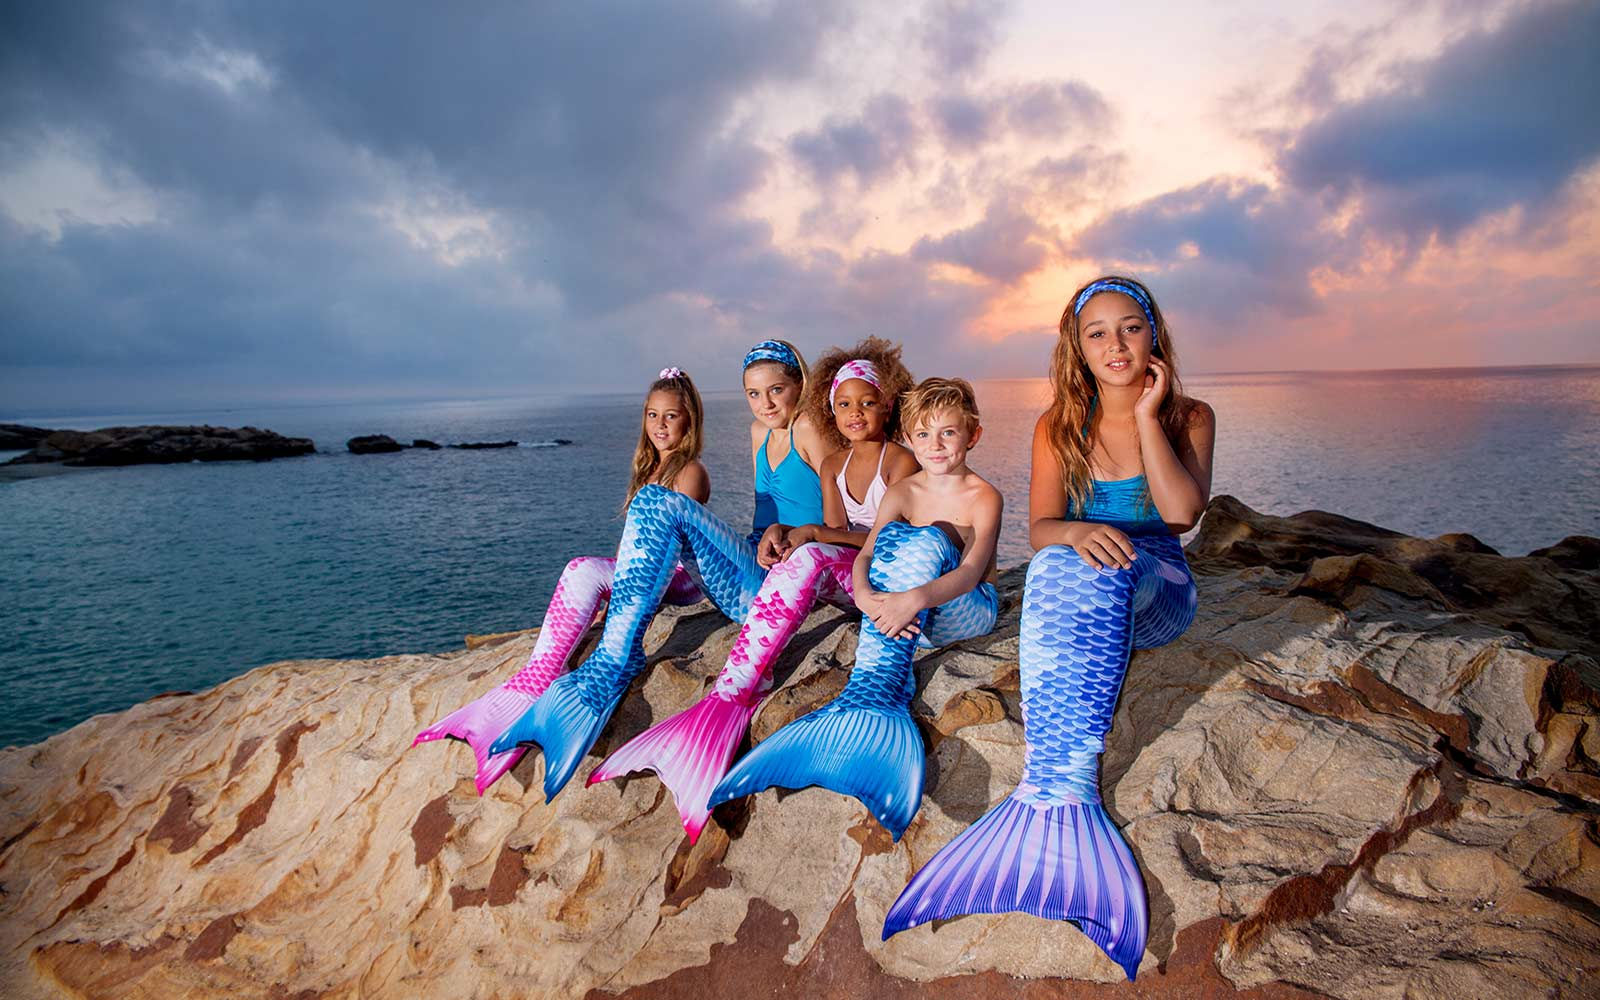 Royal Koi Mermaids with Monofins from the UK. Fin Fun Mermaid Swimming Costumes for Girls